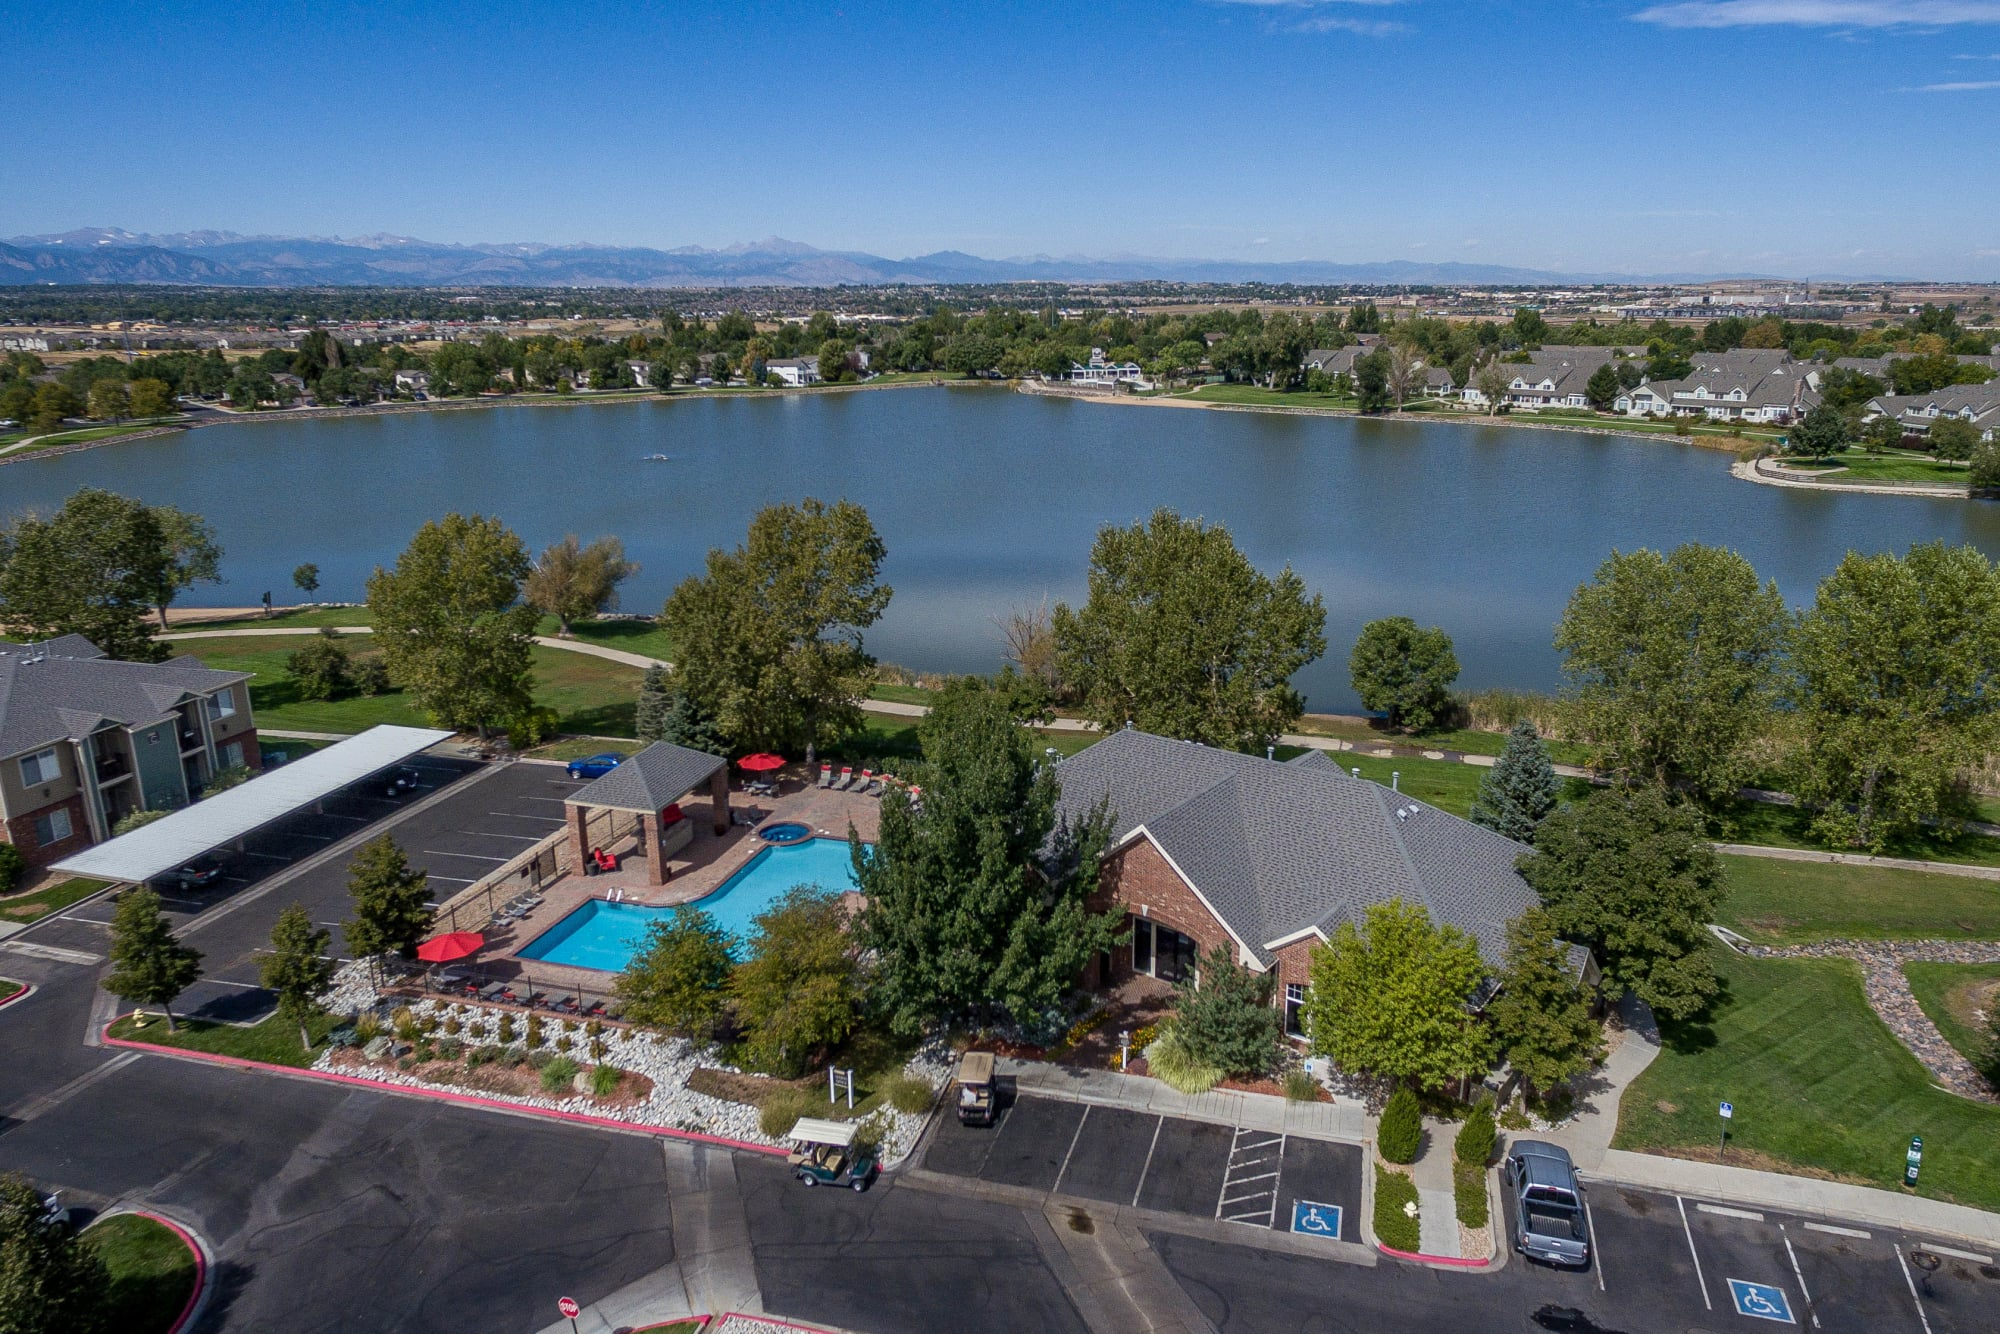 aerial view of lake, leasing office, and pool